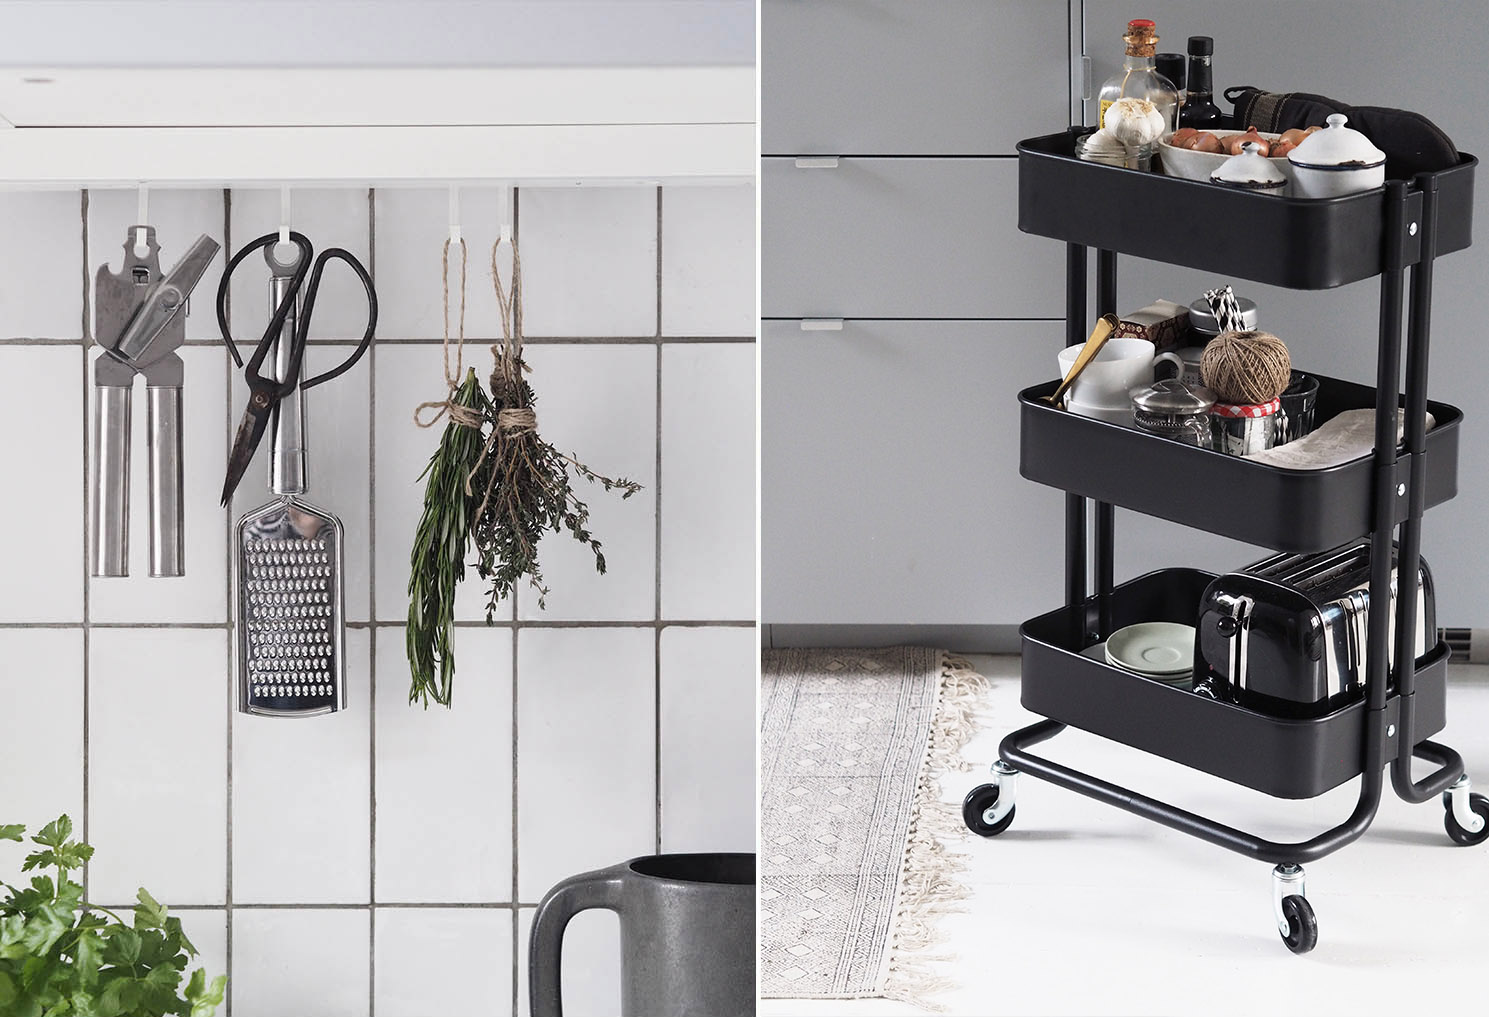 Trolley Keuken Ikea : Little details from utensils hanging from hooks to a trolley for